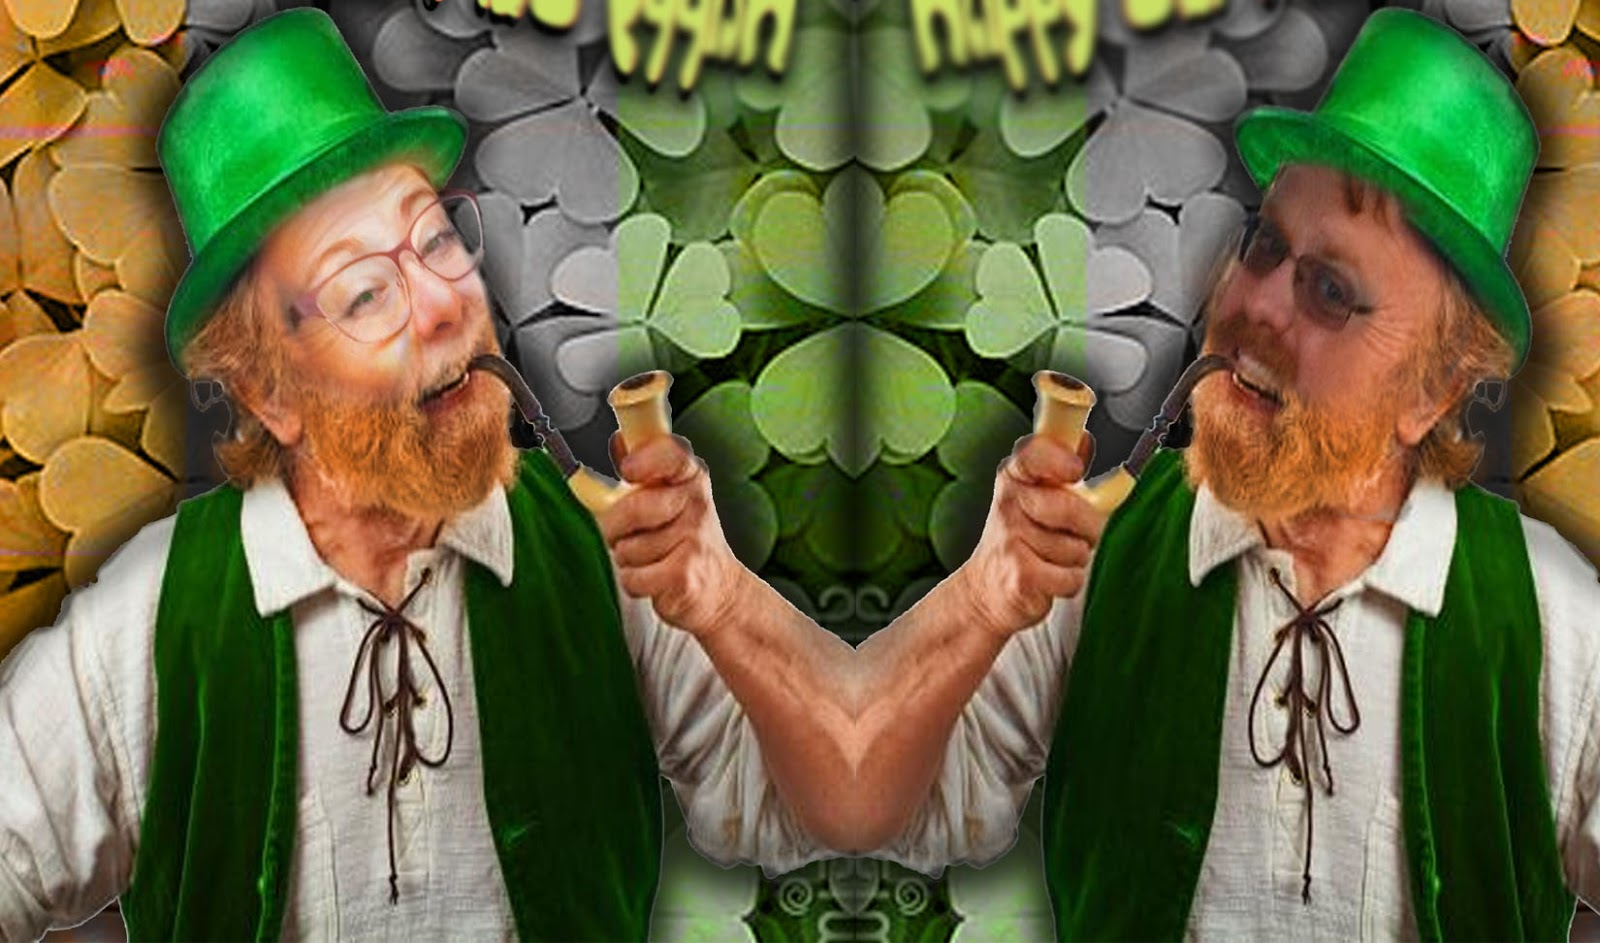 Mrshsartroom graphic design leprechaun yourself directions use copy and paste blending modes filters quick selection tool and etc create your own leprechaun image solutioingenieria Choice Image